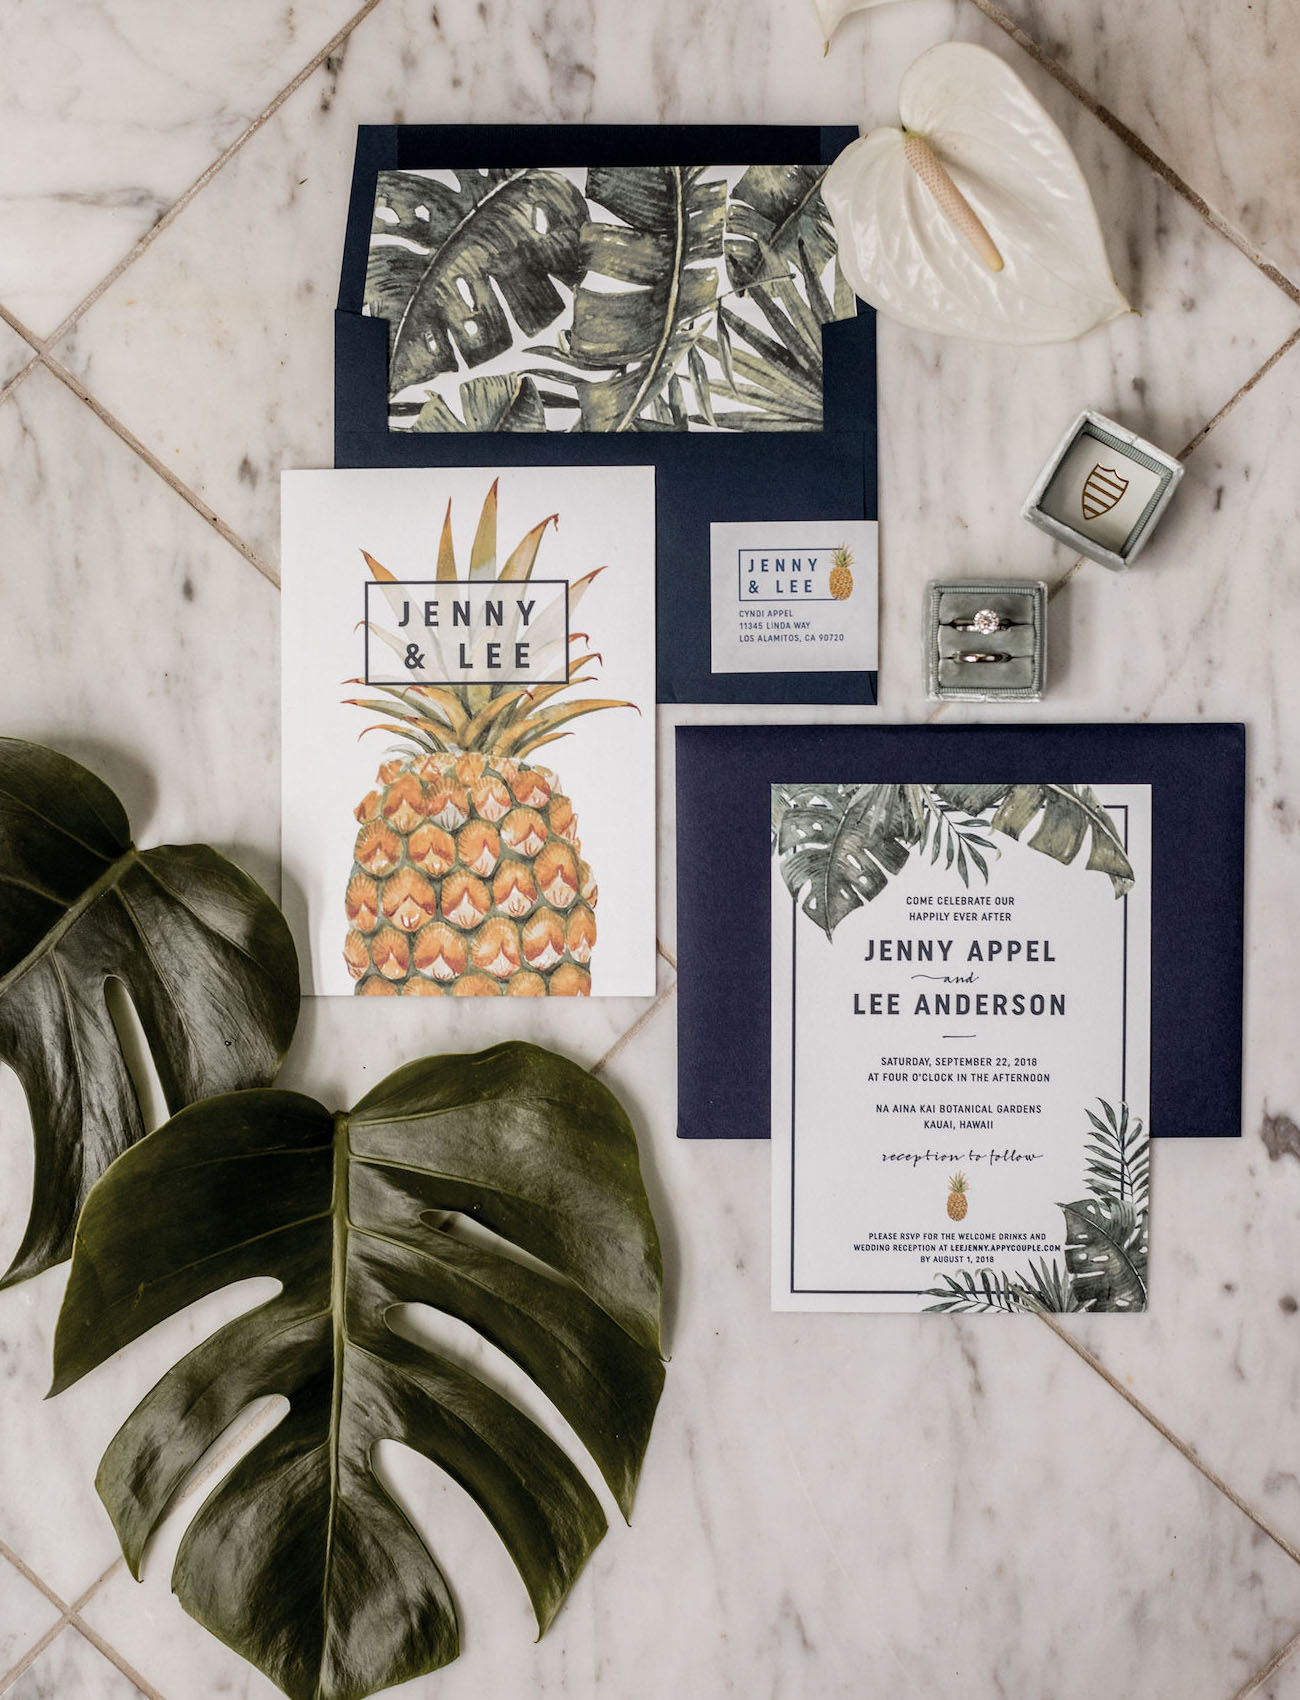 The wedding stationery was done with painted tropical leaves and pineapples to remind of the place